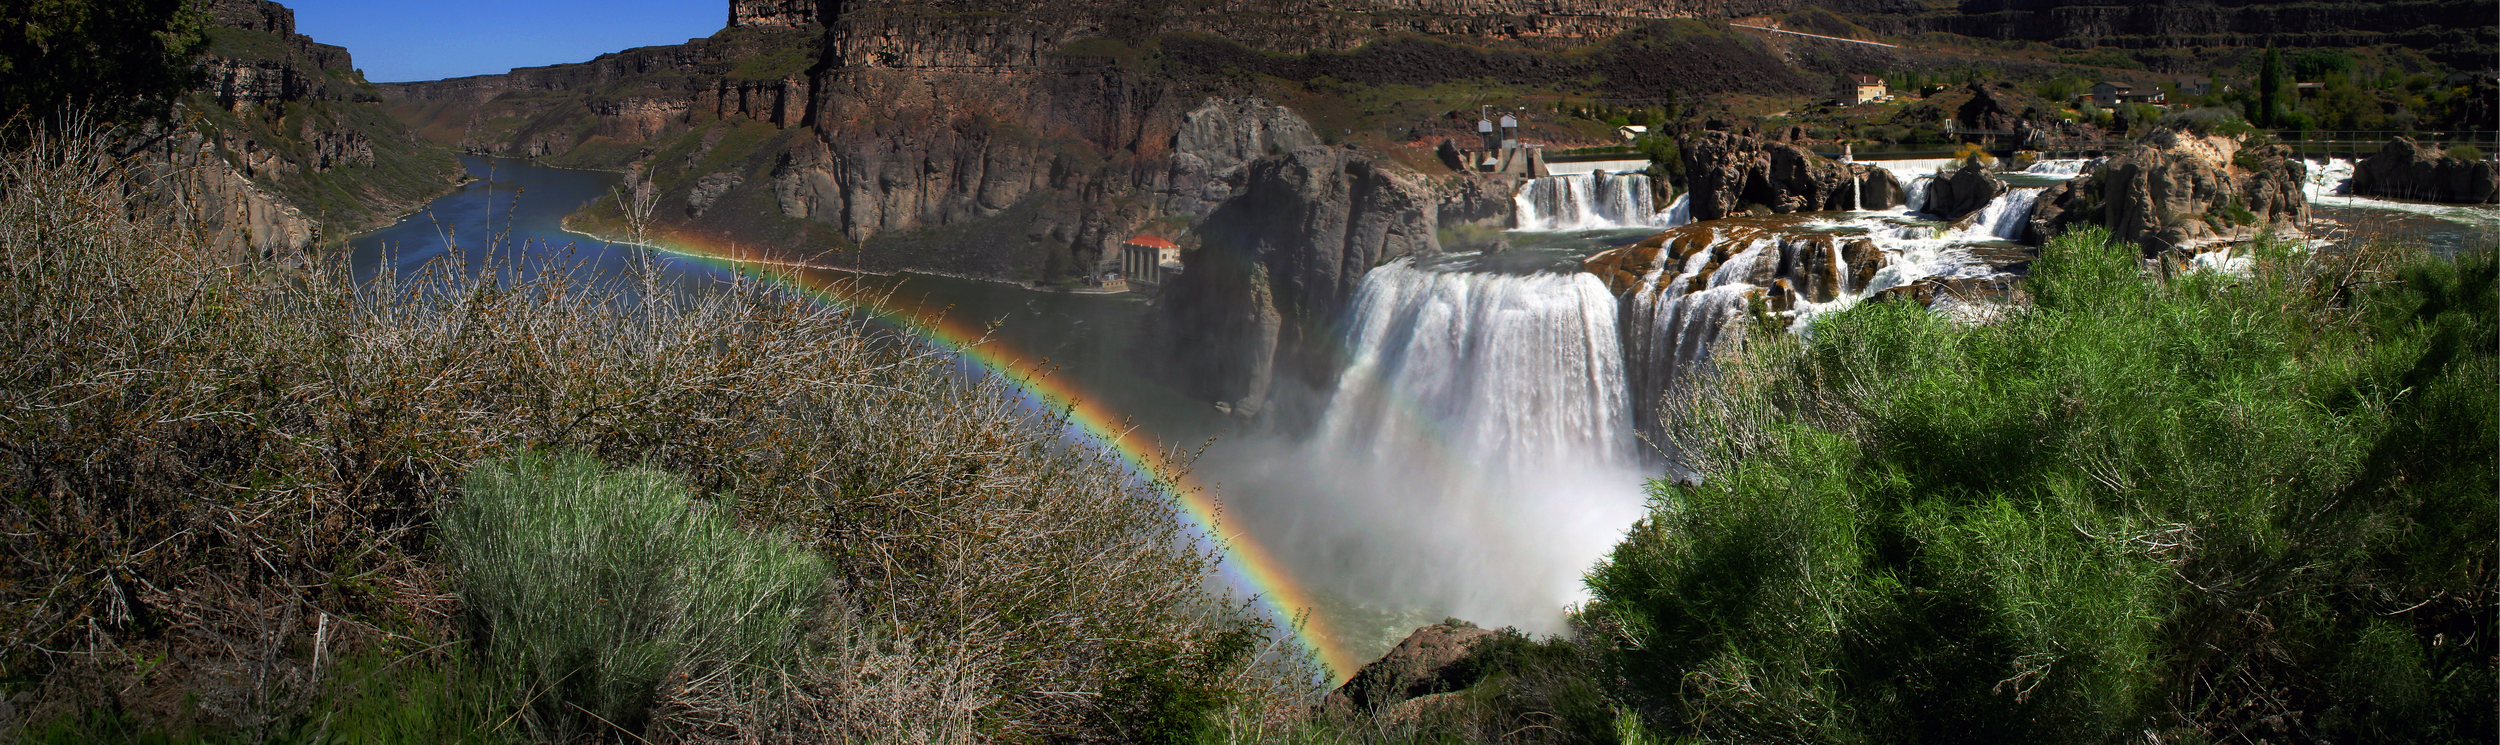 Shot almost exactly a year ago at Shoshone Falls on the Snake River in southern Idaho, this photo was named one of two runners up in a recent photo contest co-sponsored by Save Our Wild Salmon and Mountain Khakis. (photo by Greg Stahl)